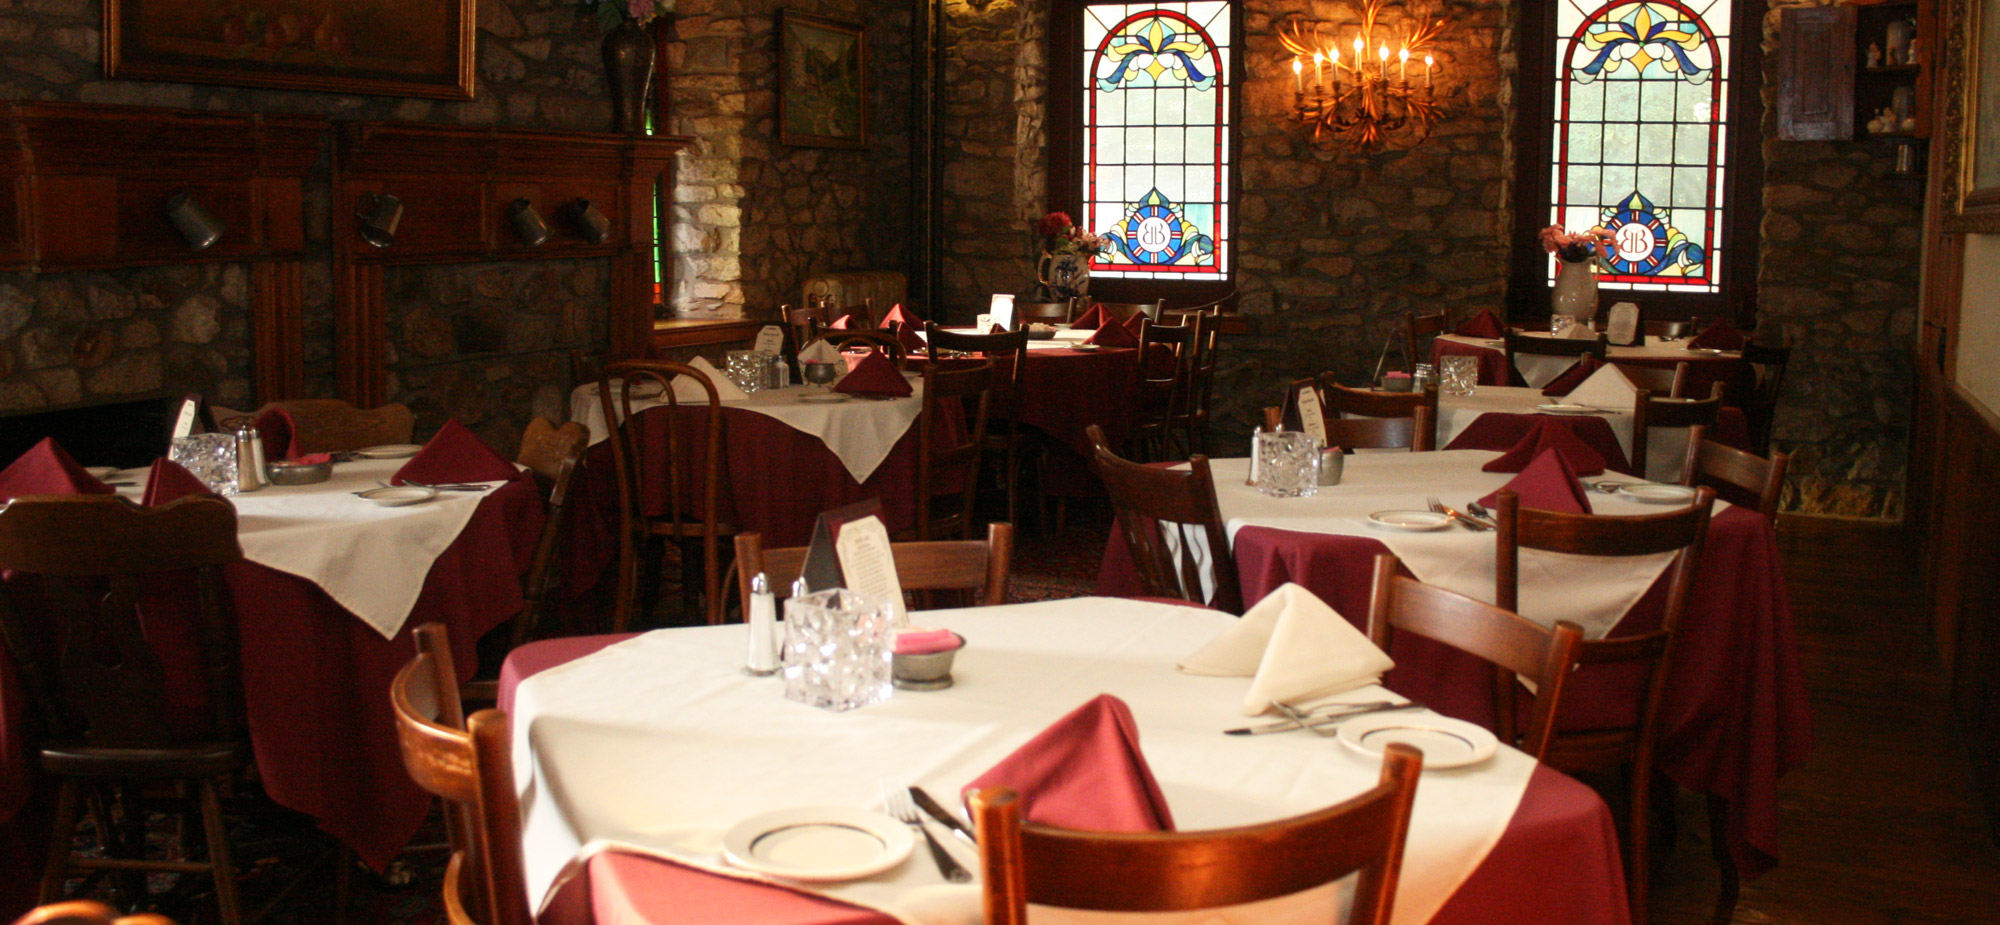 Dining room at the Springtown Inn